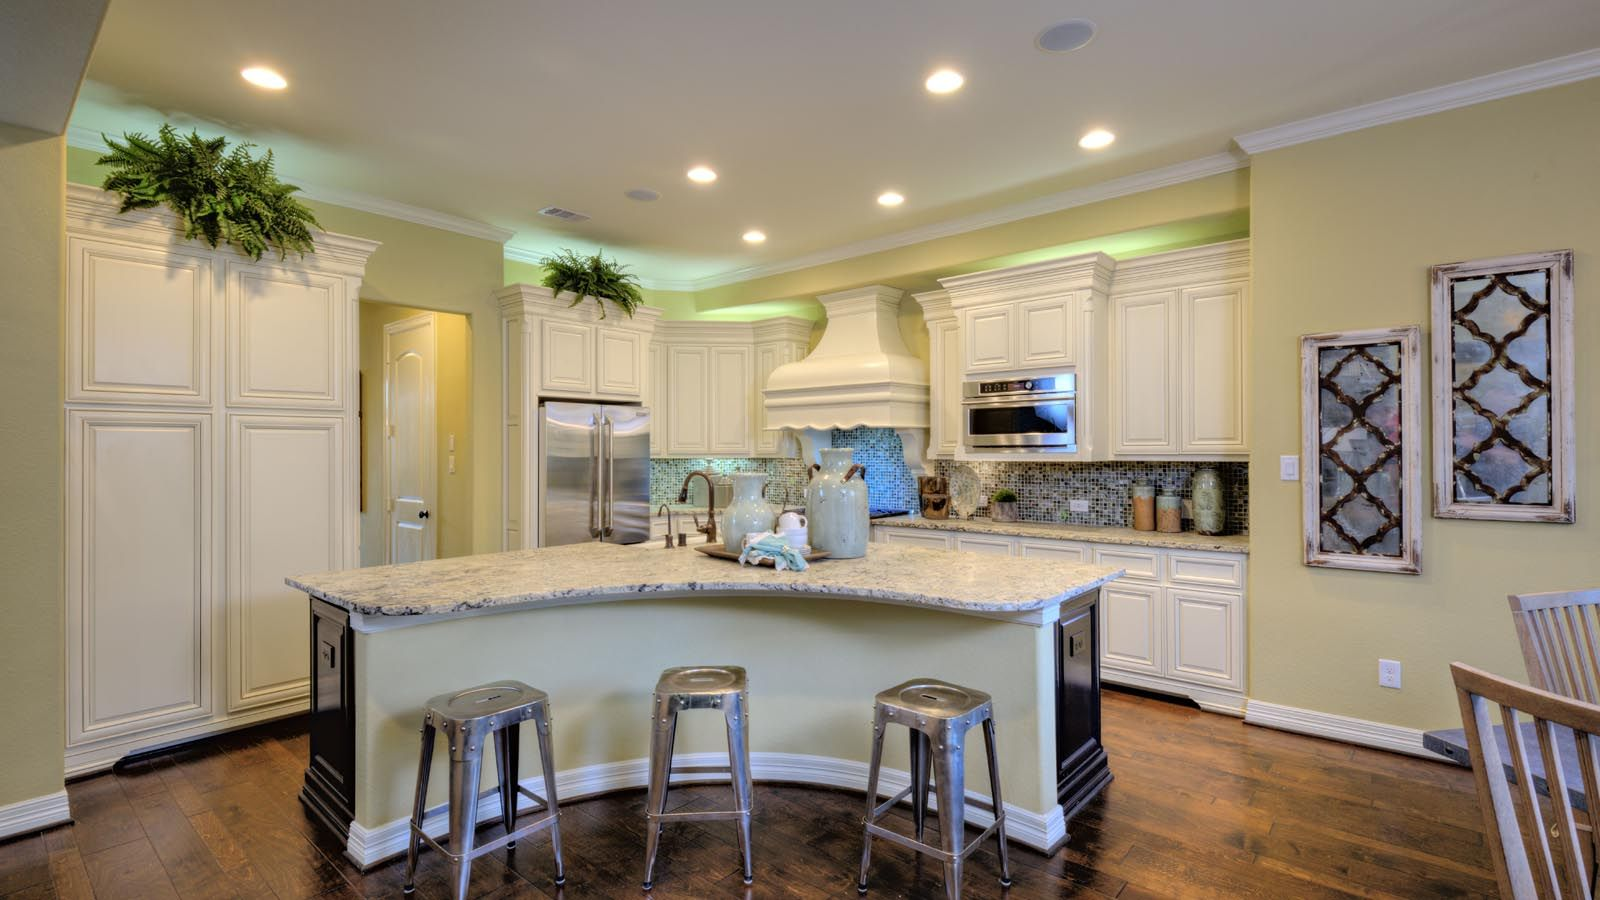 Kitchen featured in the Milano Plan By Taylor Morrison in Houston, TX